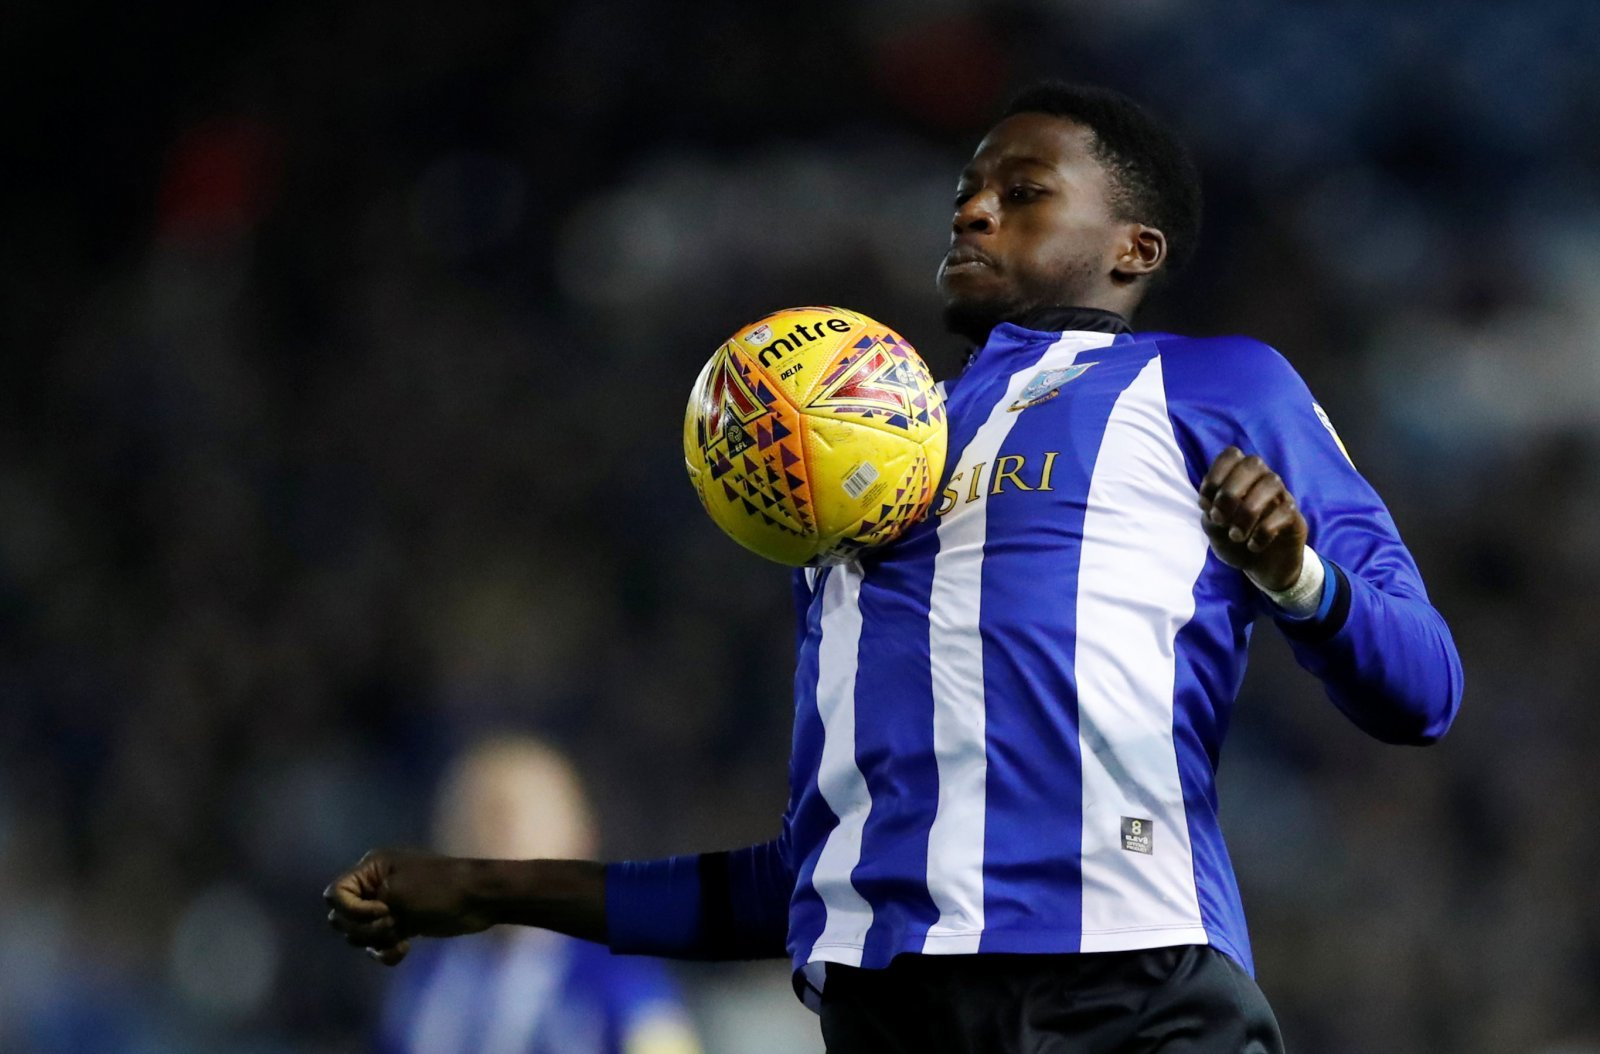 Sheffield Wednesday: Fans think Dominic Iorfa should be named Player of the Month